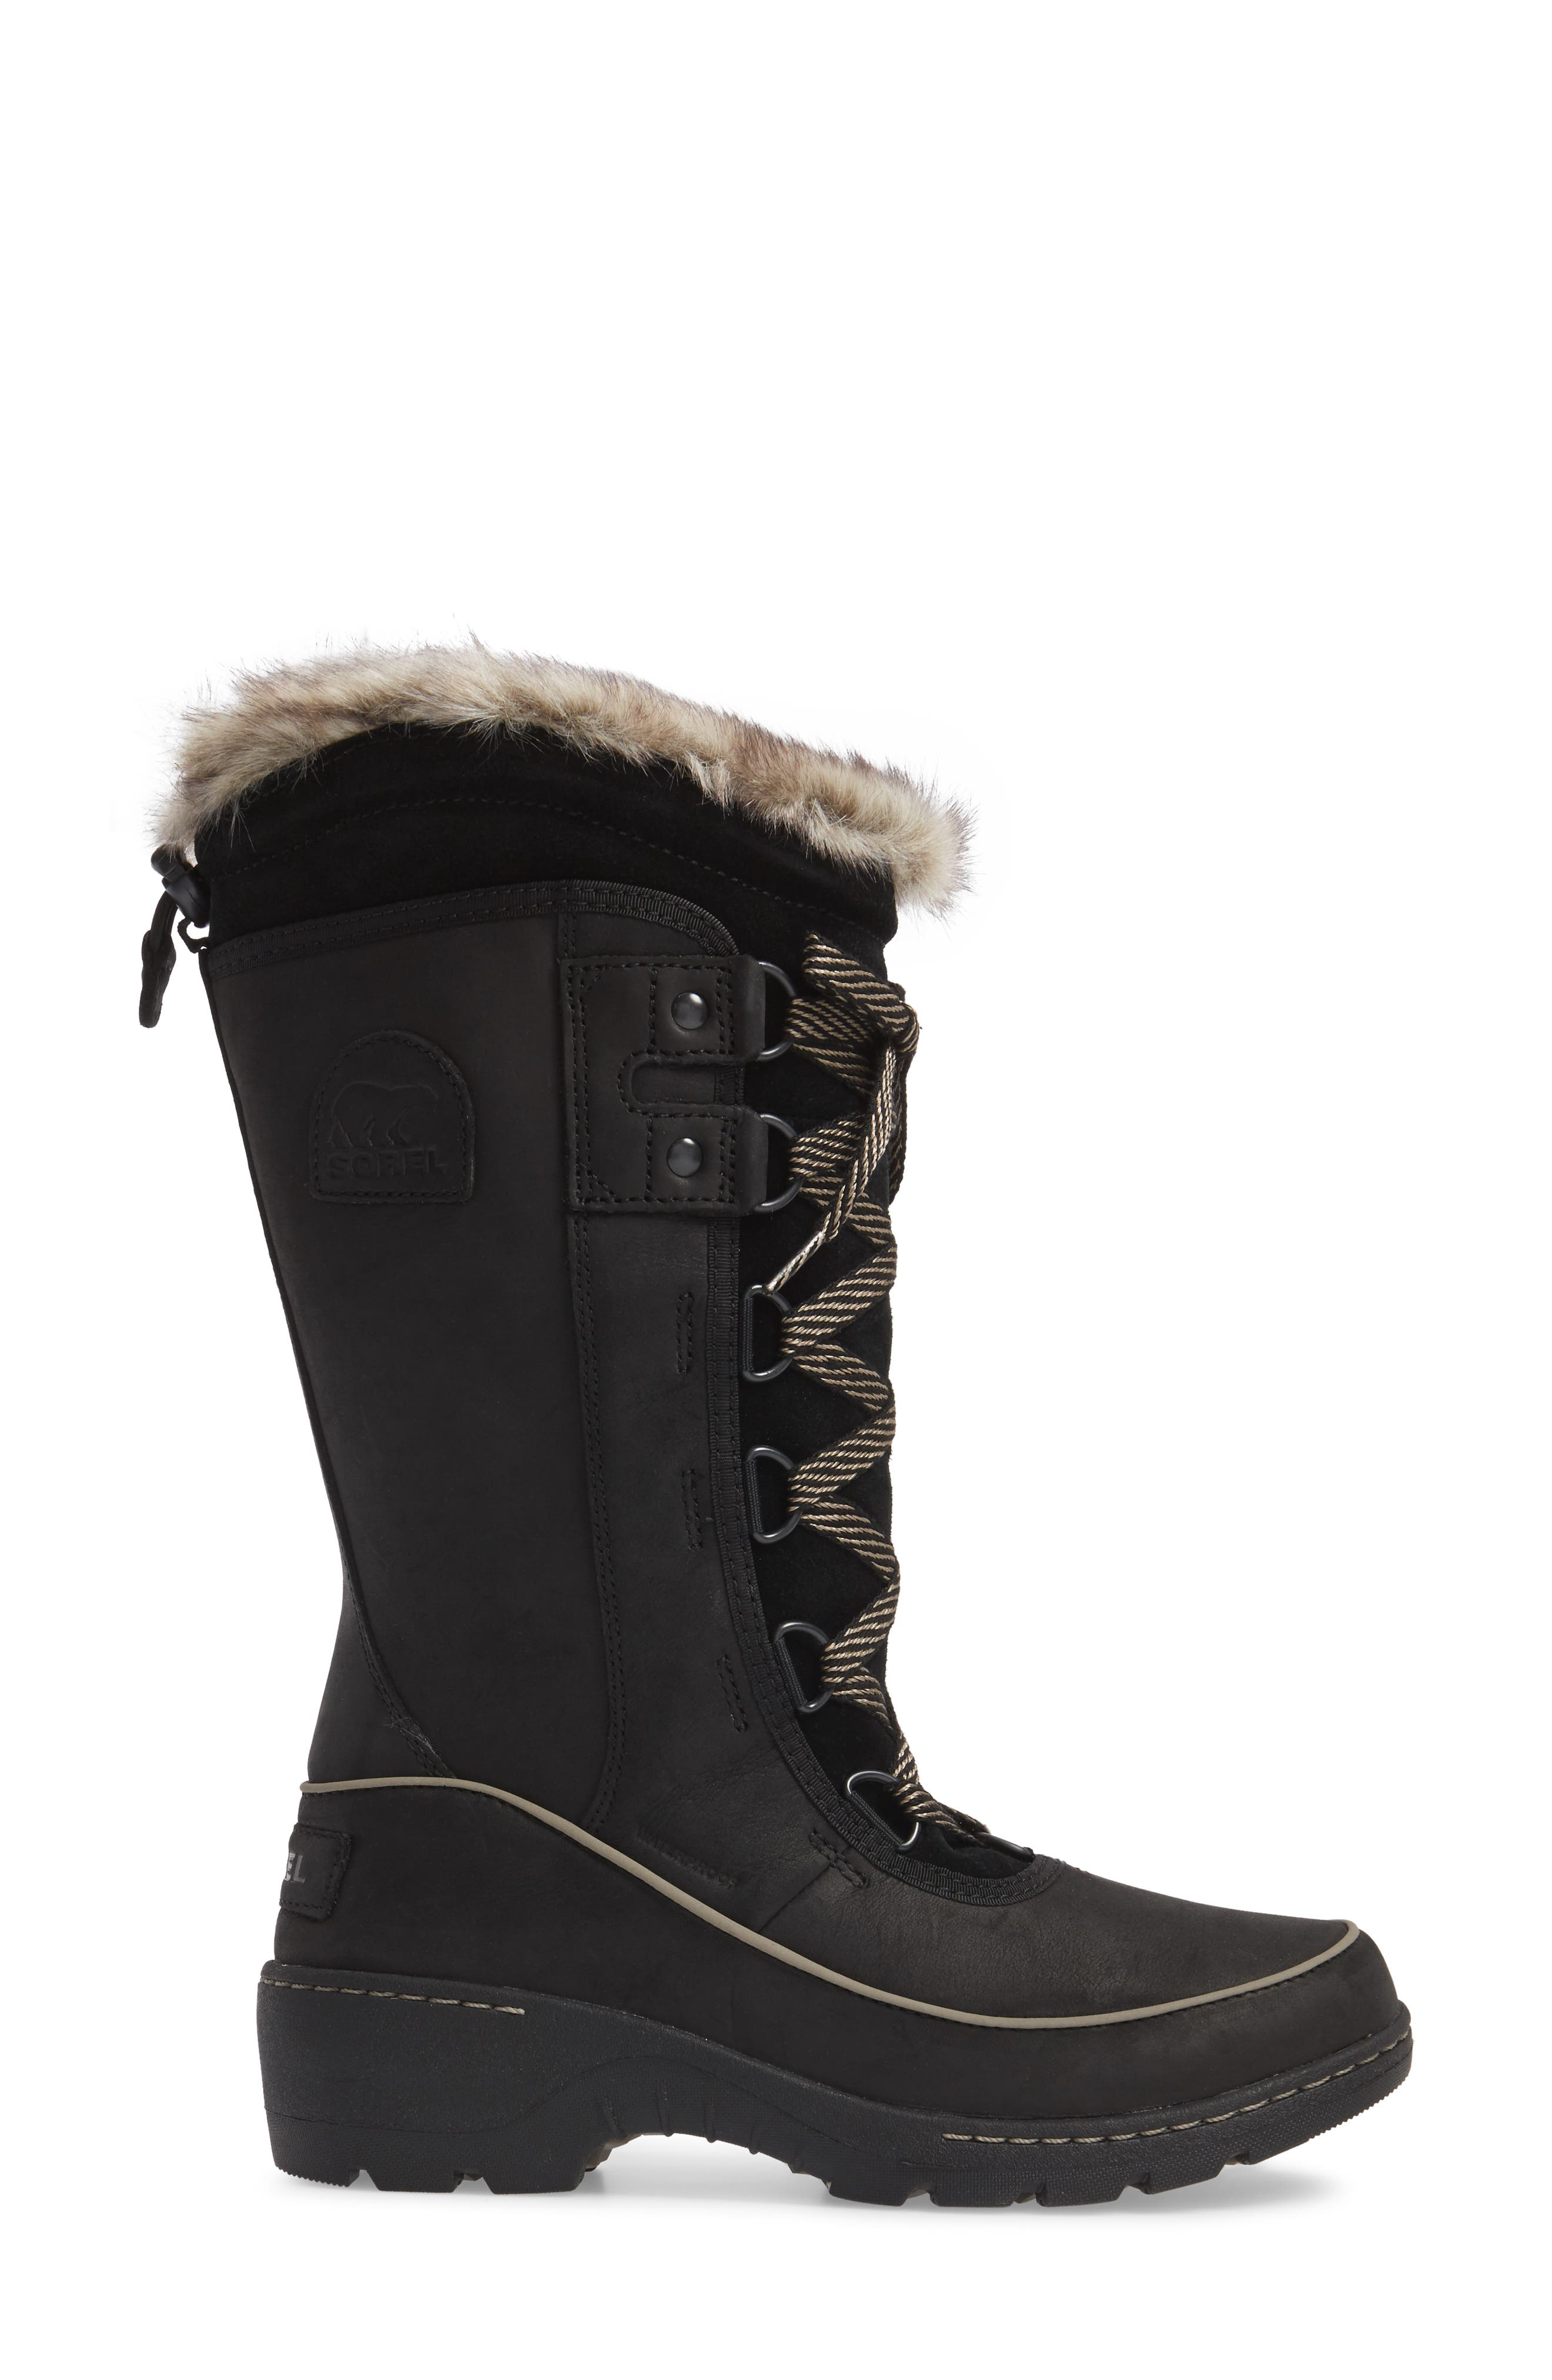 Tivoli II Insulated Winter Boot with Faux Fur Trim,                             Alternate thumbnail 3, color,                             010